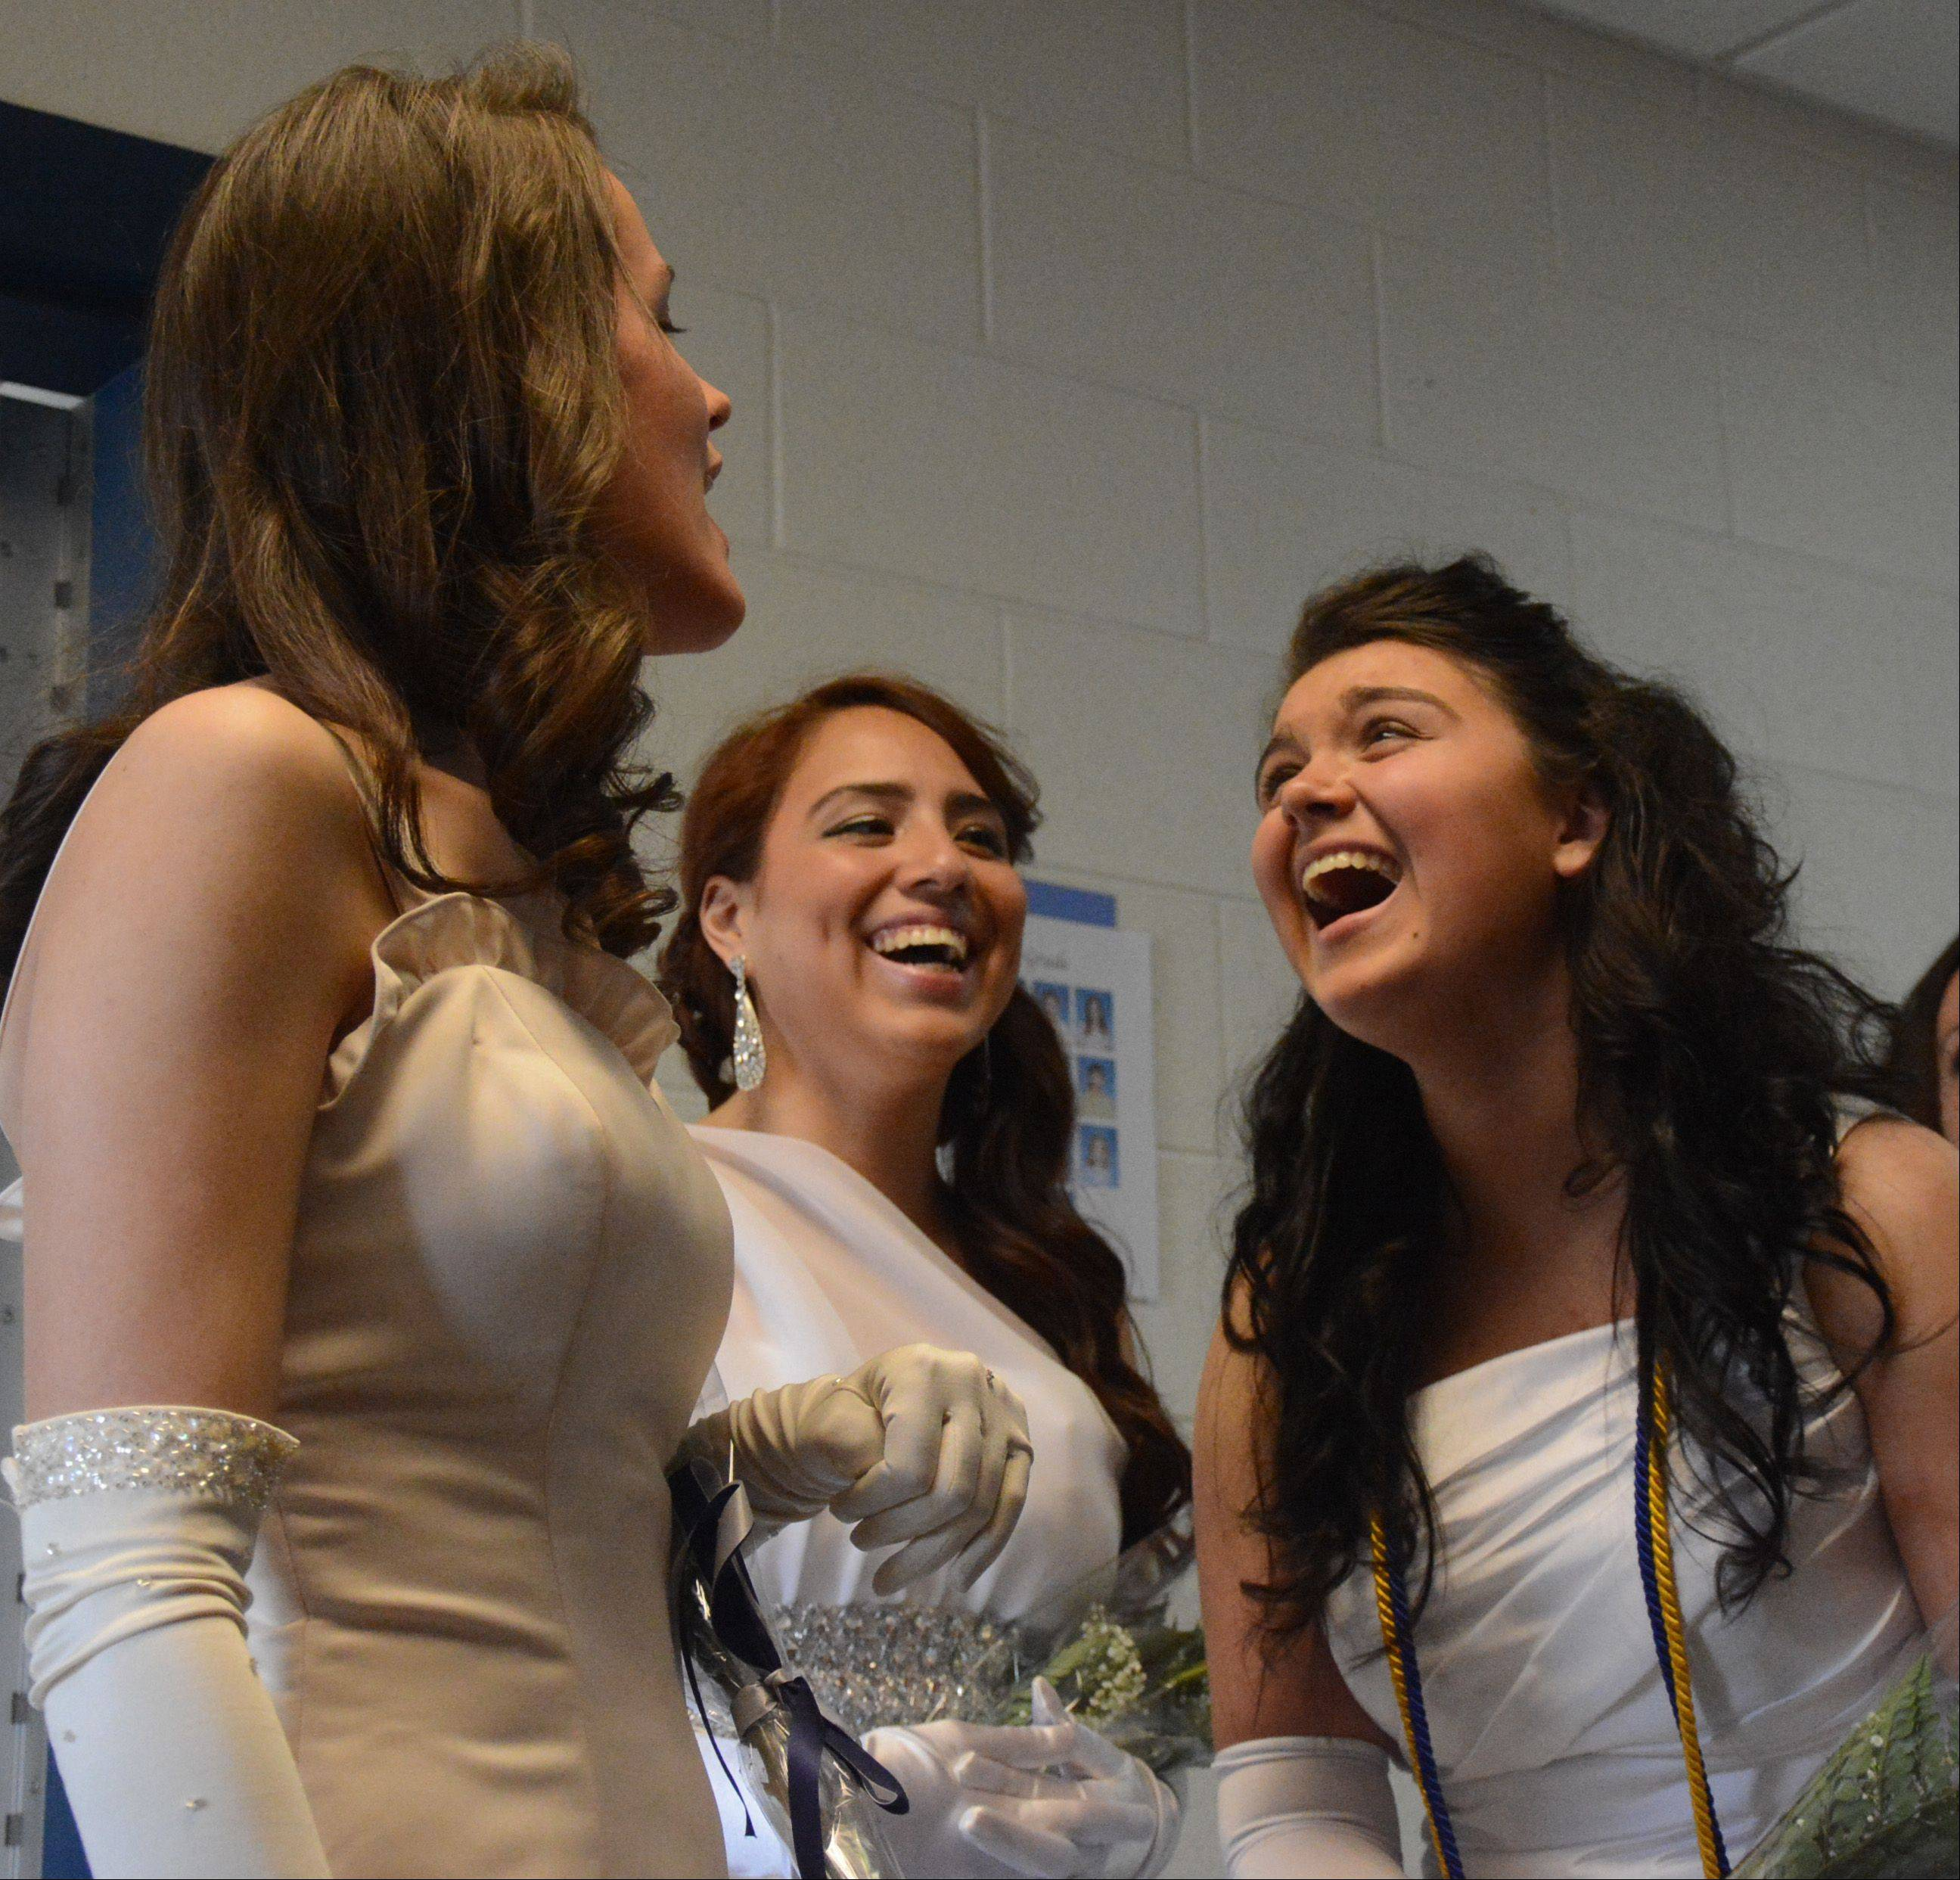 Dave Dvorak/ddvorak@dailyherald.comCarolina Avila, left, Breeze Alvarado and Crystal Avila laugh as they look at old pictures before the Willows Academy commencement Sunday.